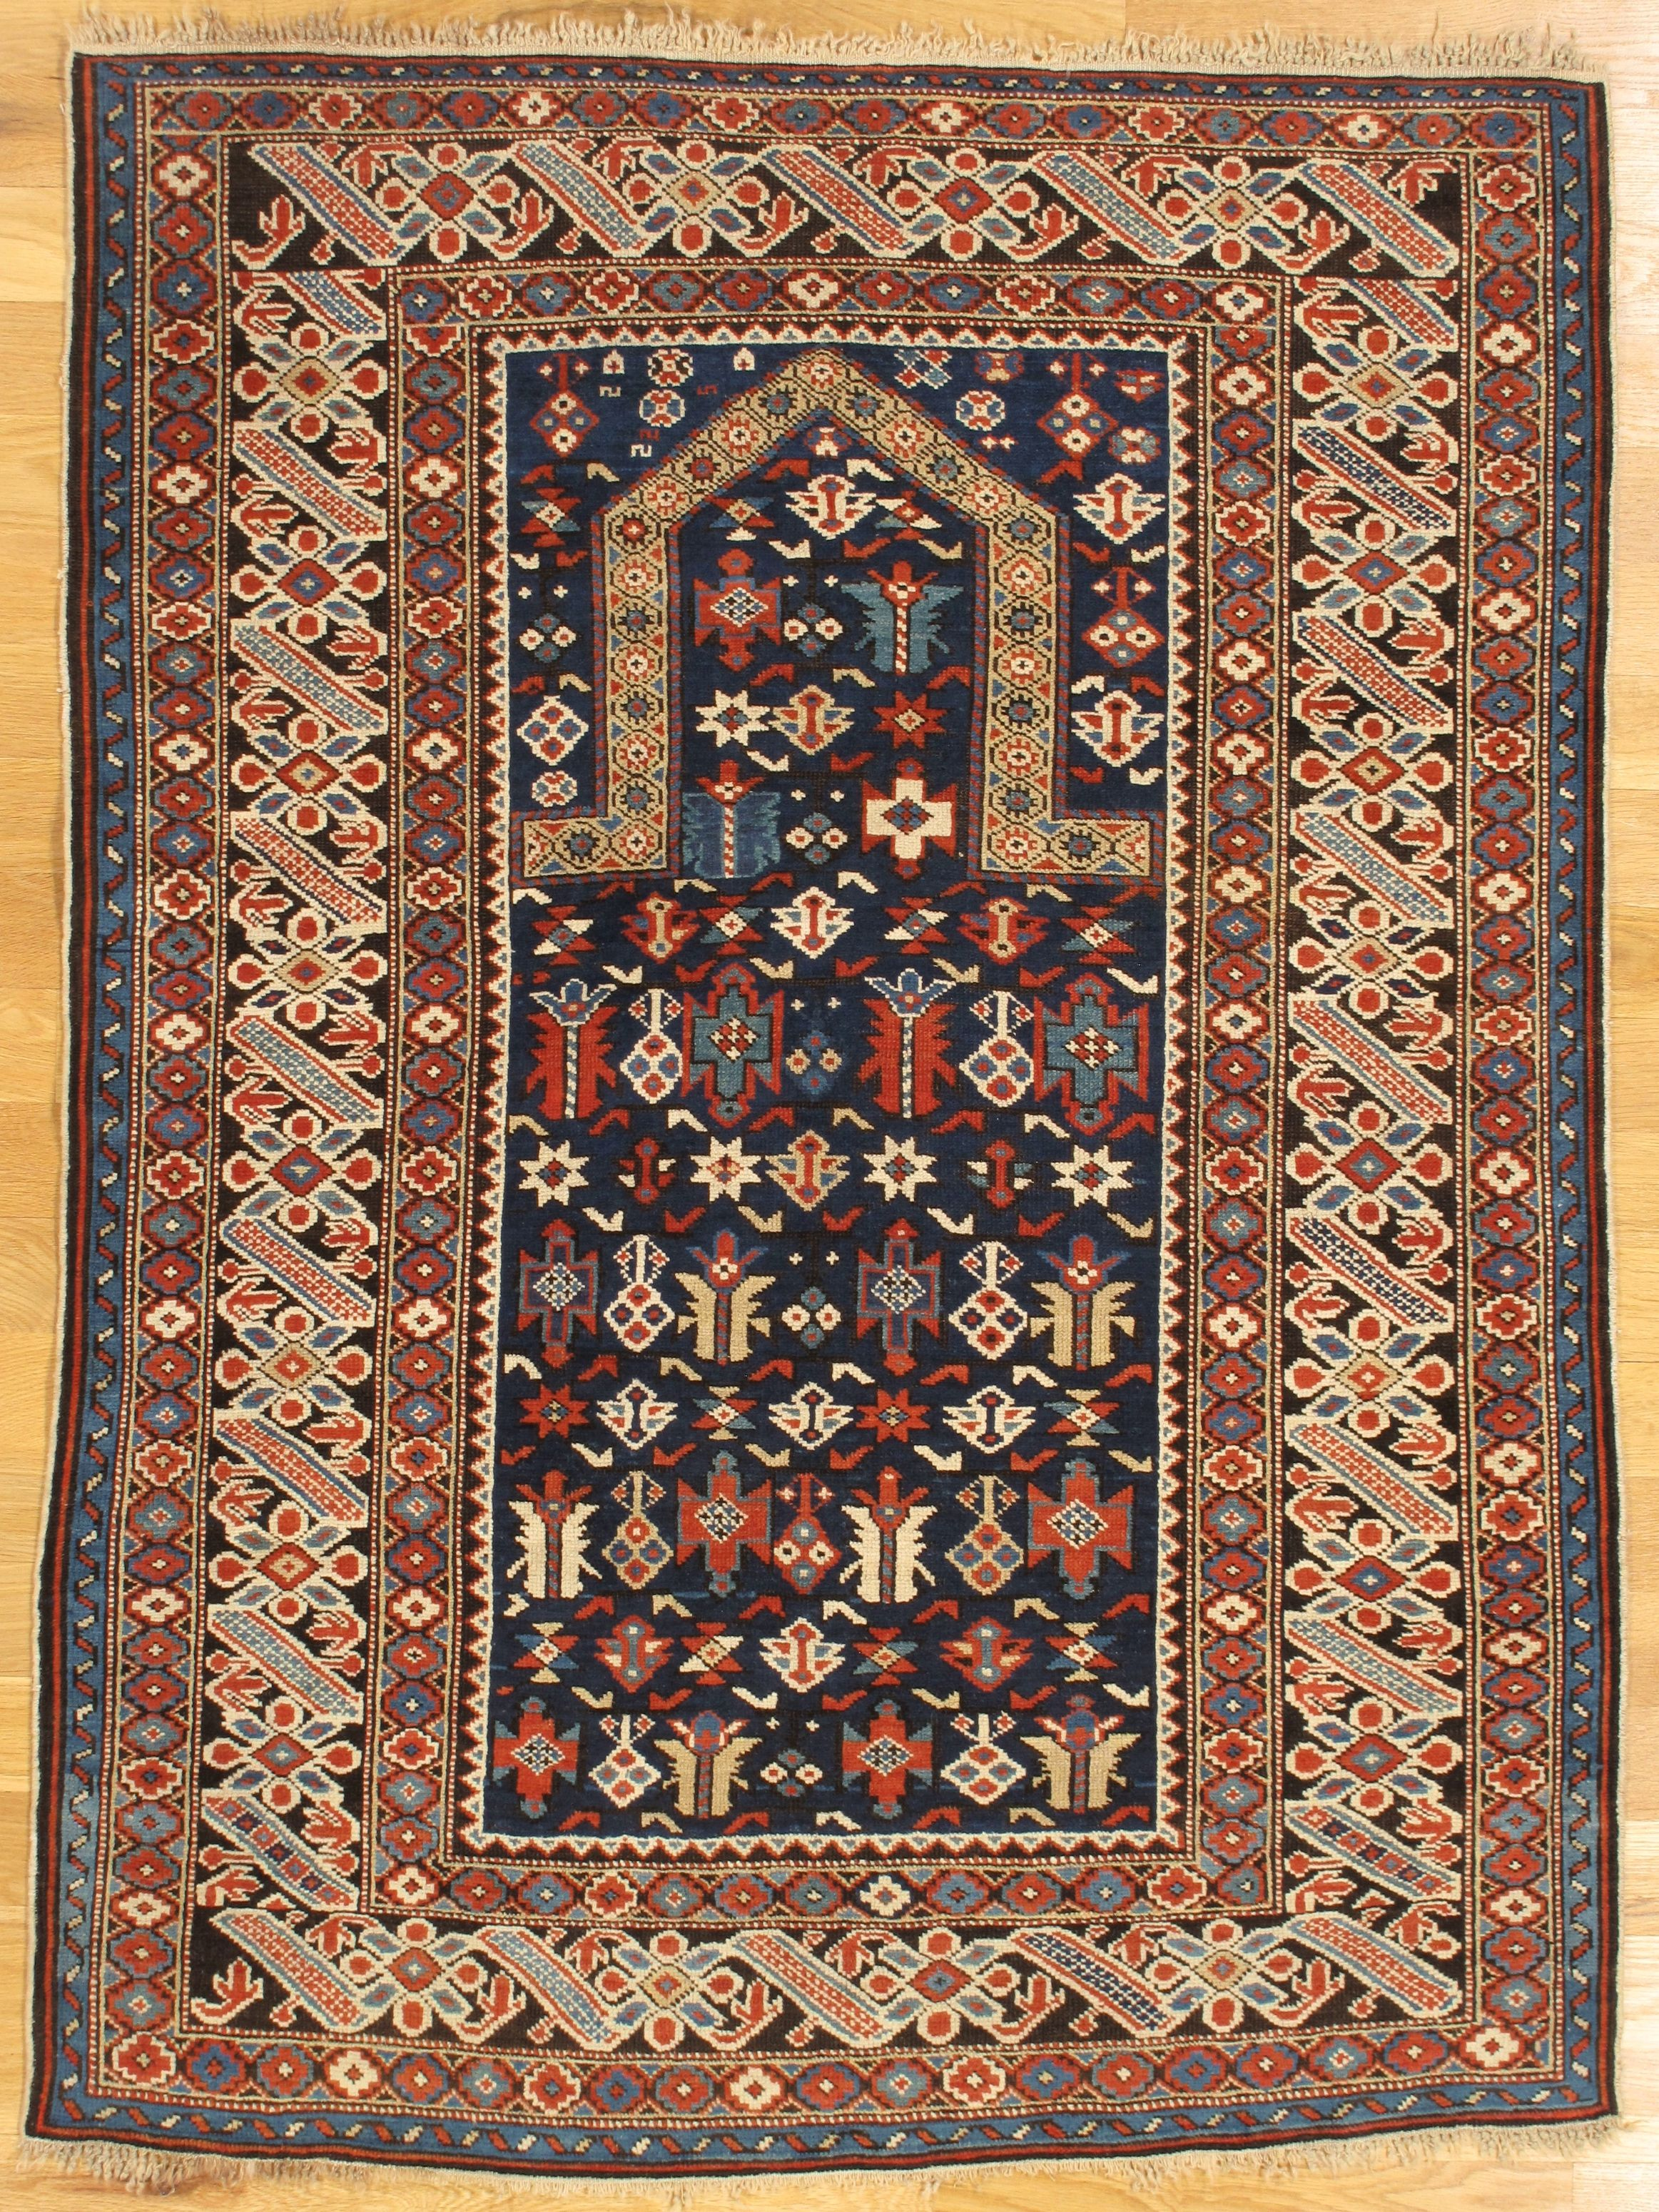 Chi Chi Prayer Rug From Kuba District Eastern Caucasus West Coast Of The Caspian Sea Age Circa 1875 Size 5 0 X3 8 152x112 In 2020 Rugs Persian Rug Rugs On Carpet